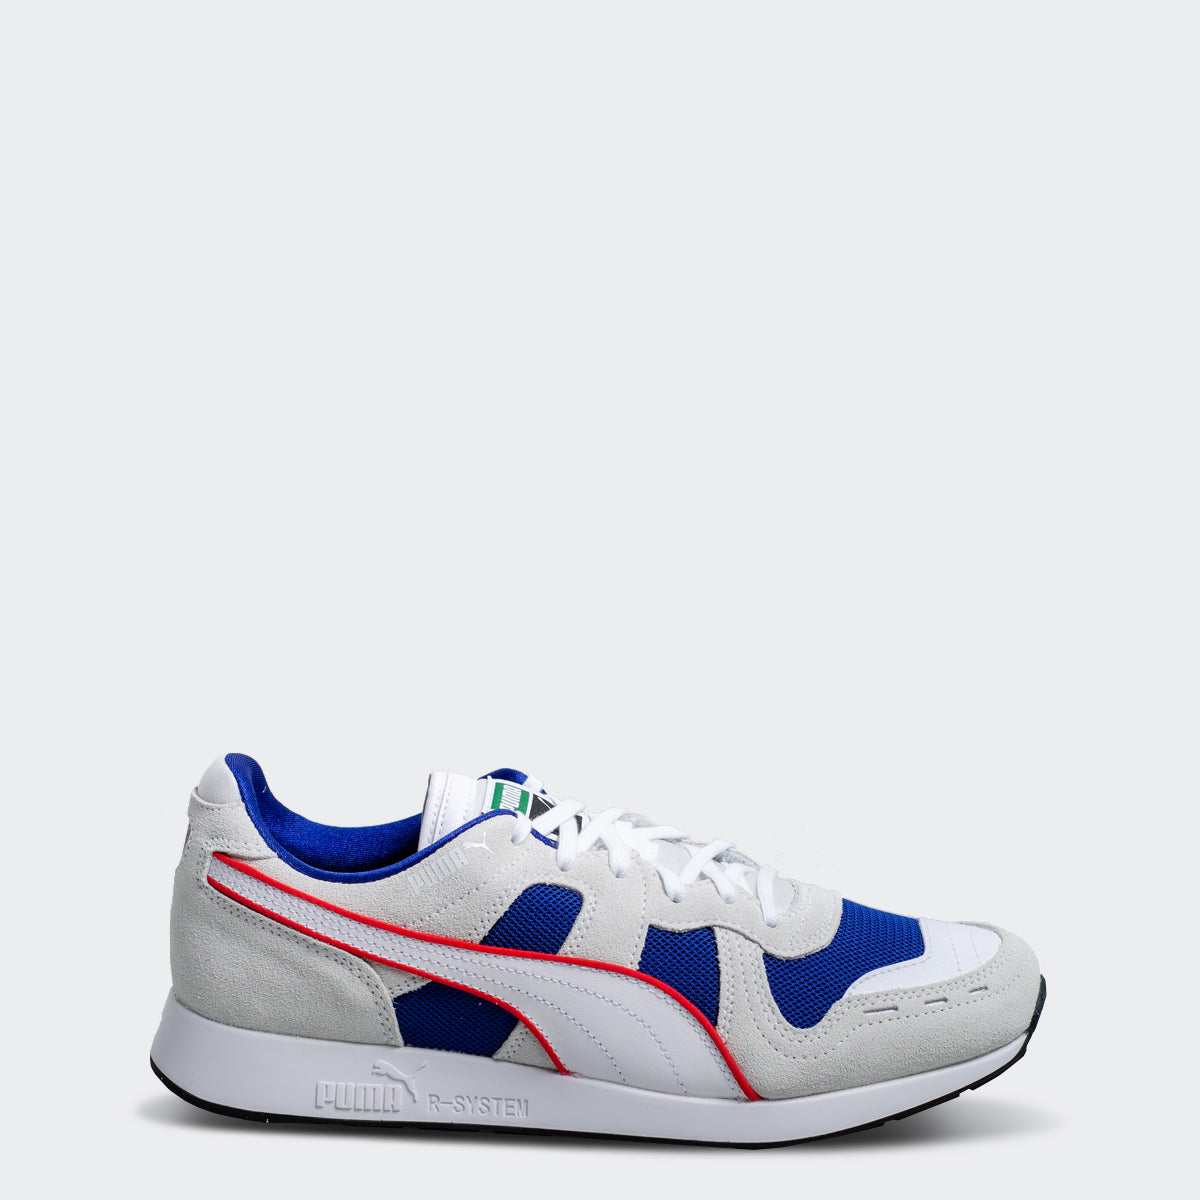 separation shoes de74f d556c Men s PUMA RS-100 Core Sneakers White Blue